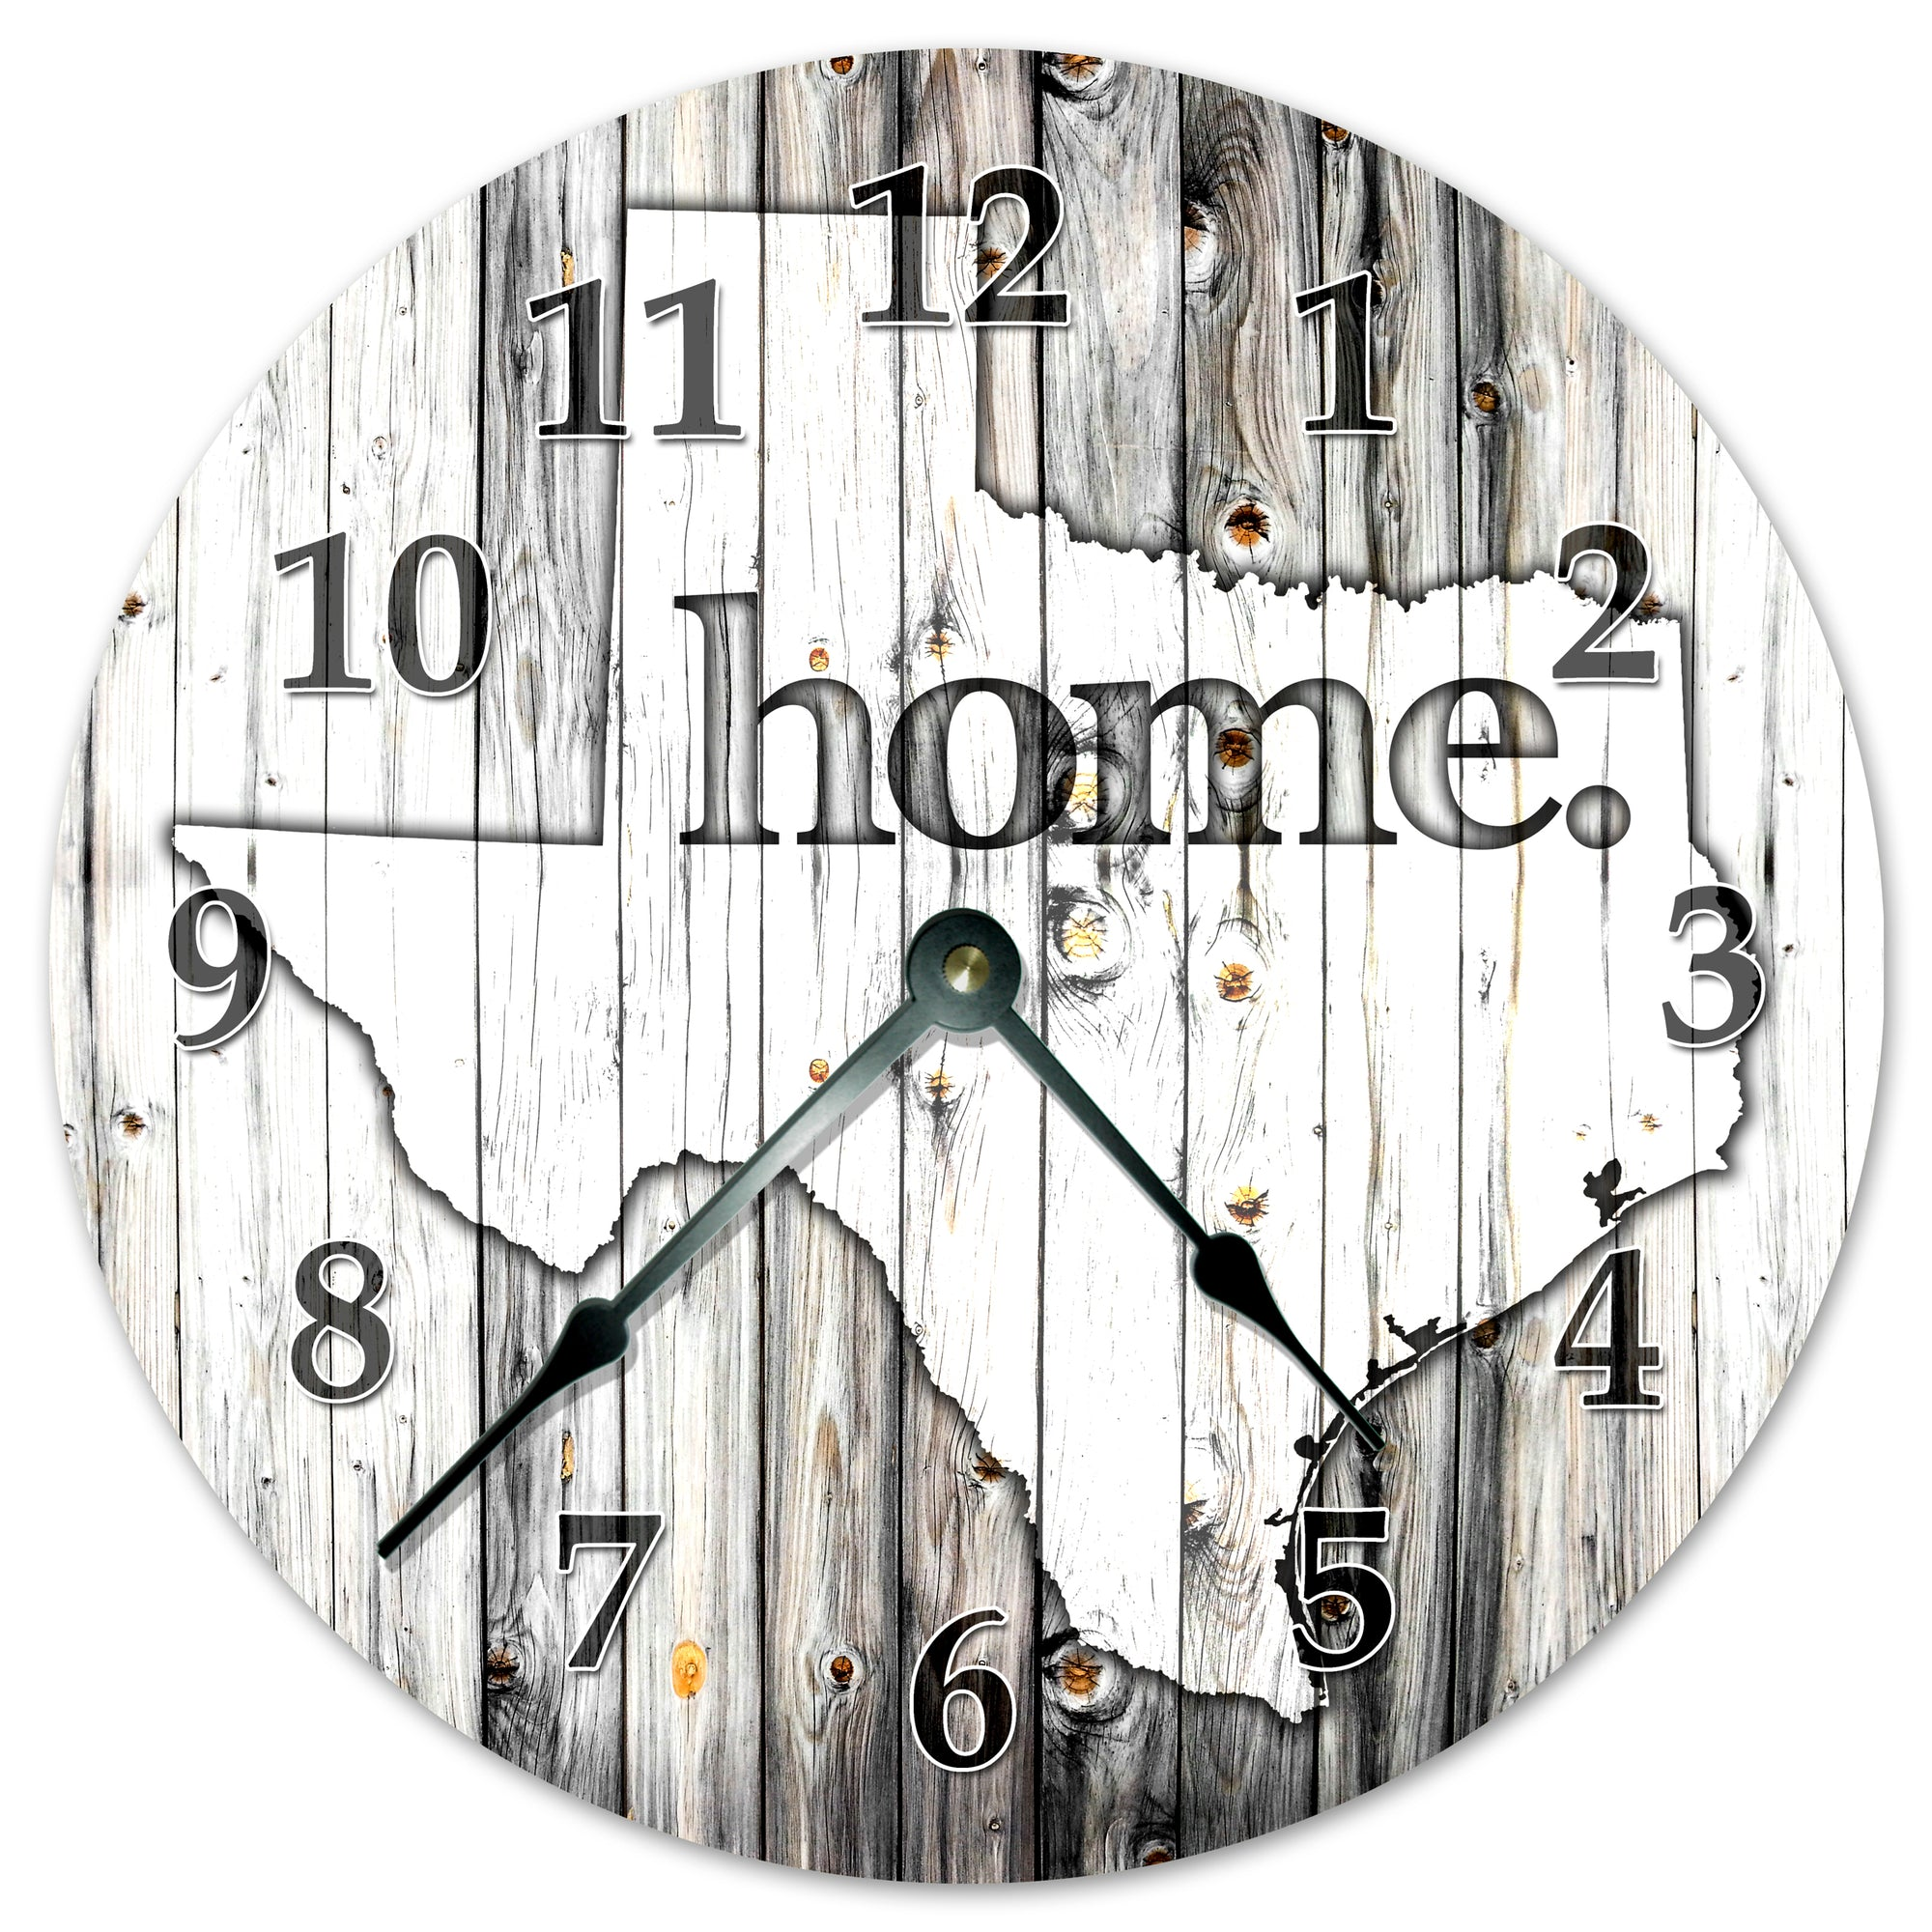 Texas Rustic Handmade Hanging Wall Clock